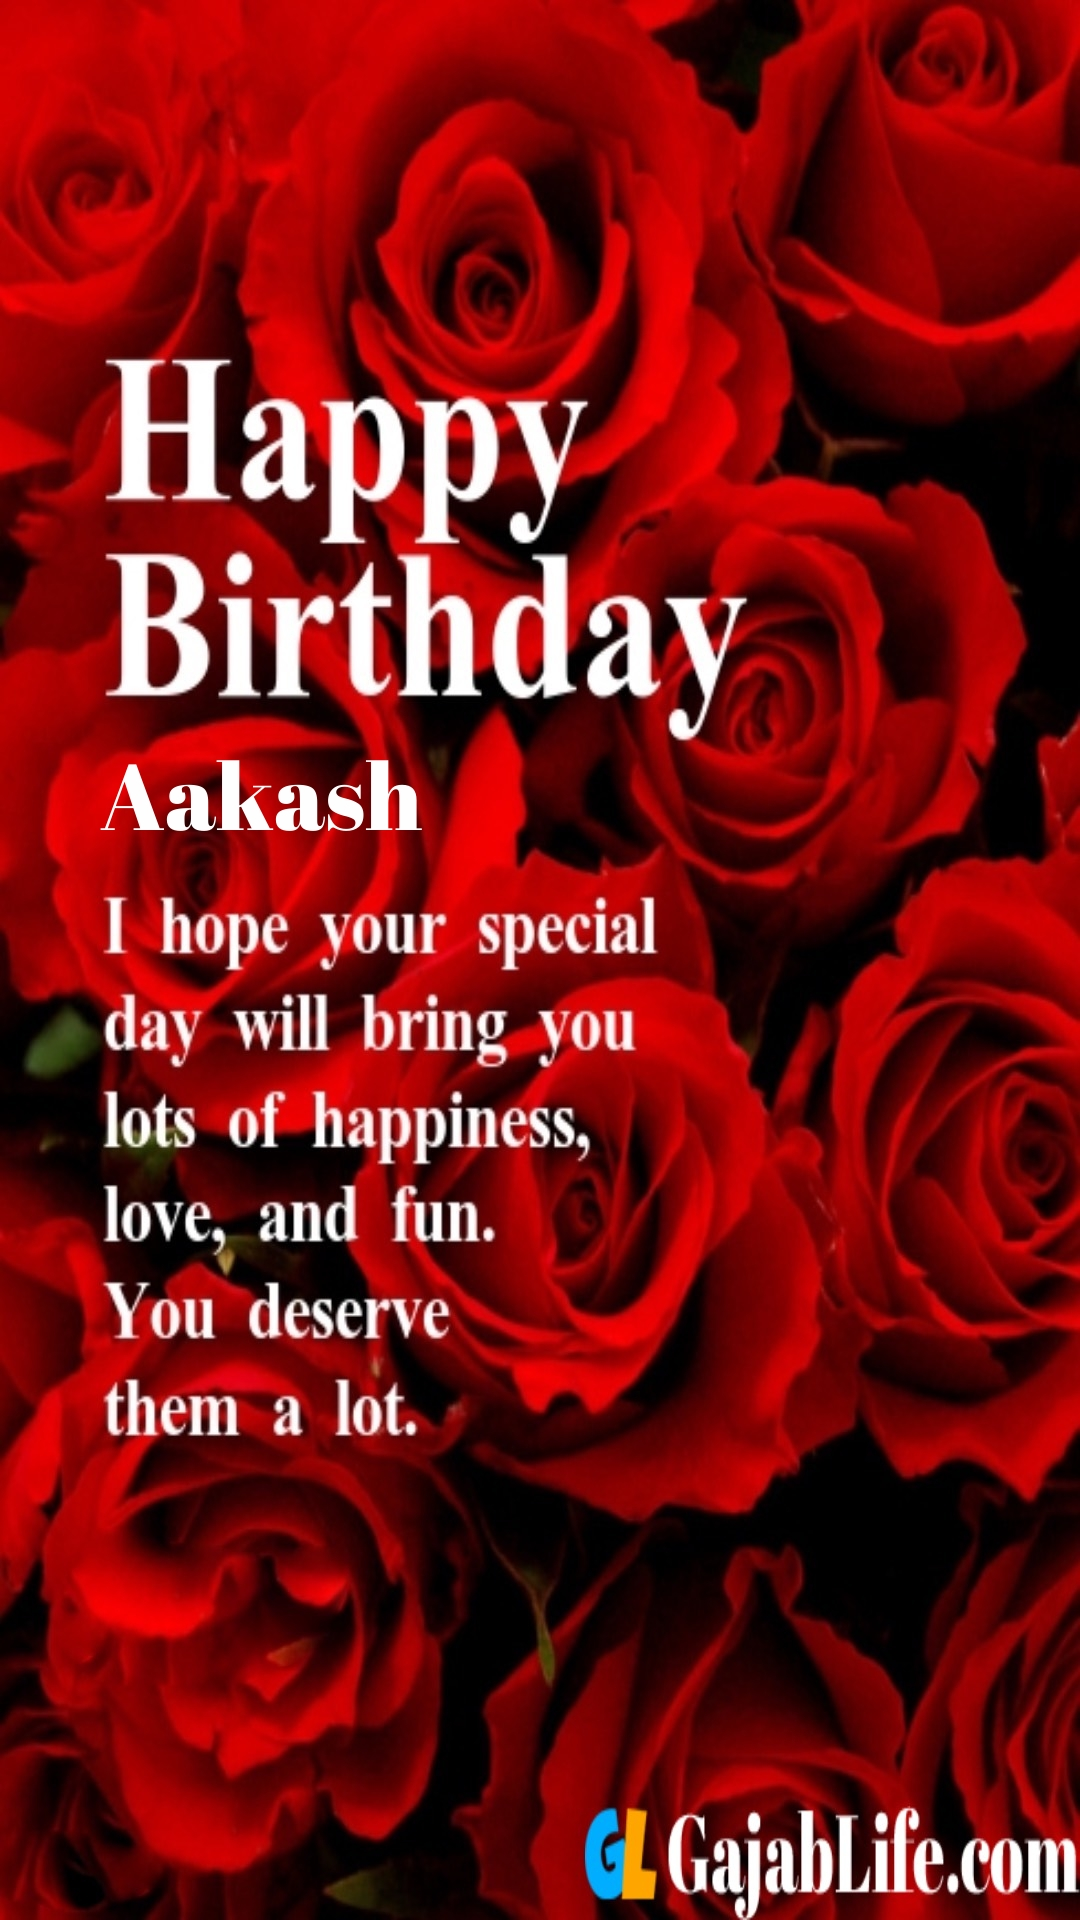 Aakash birthday greeting card with rose & love